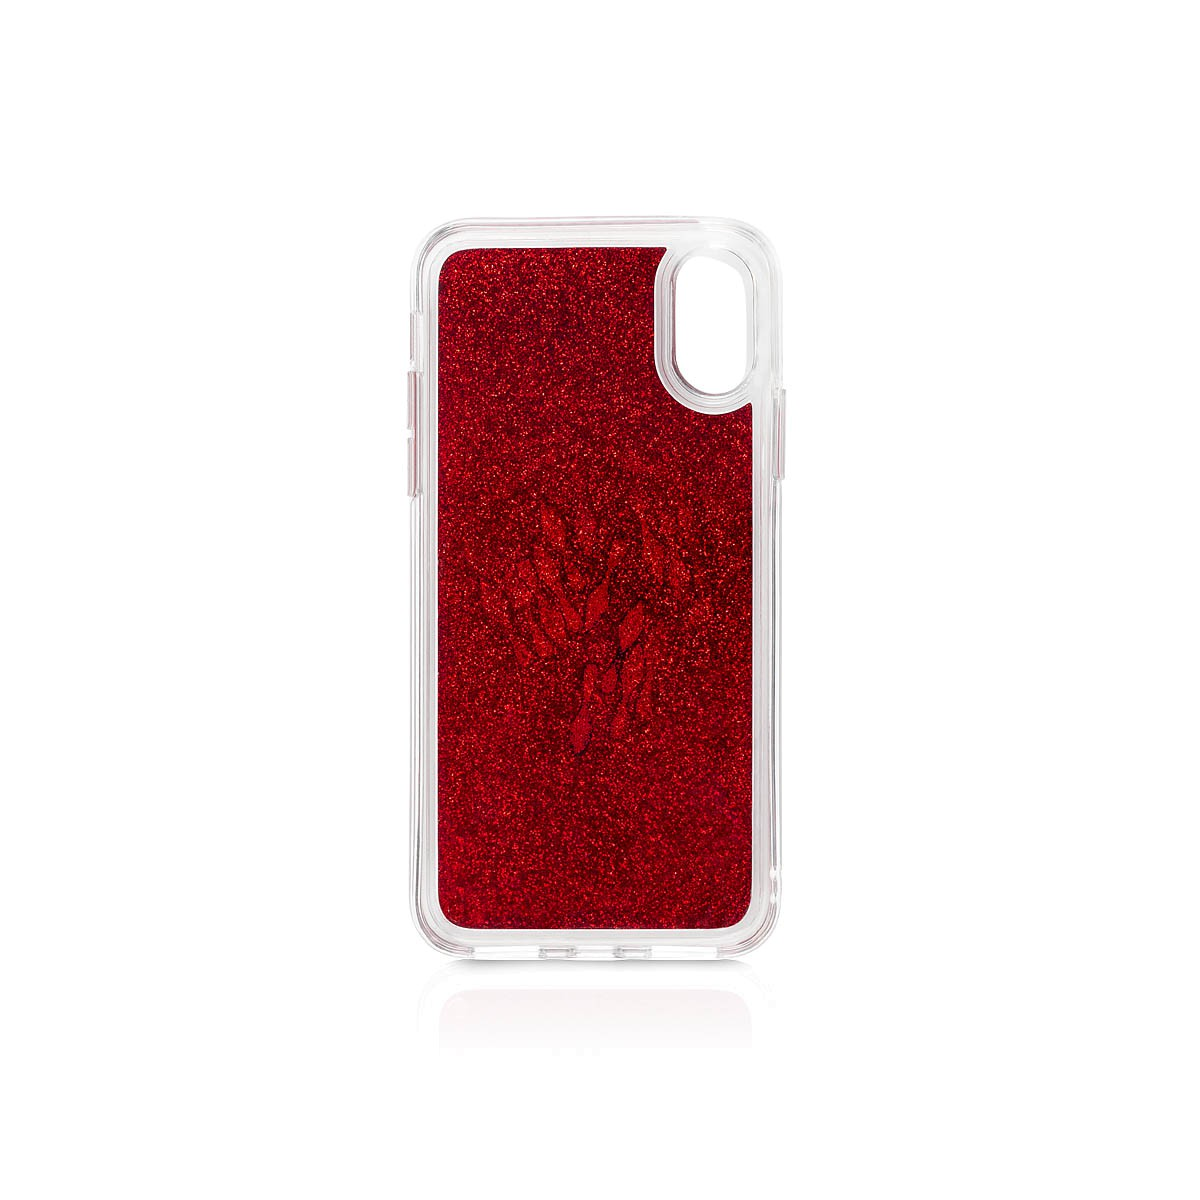 Small Leather Goods - Loubiring Iphone Case X/xs - Christian Louboutin